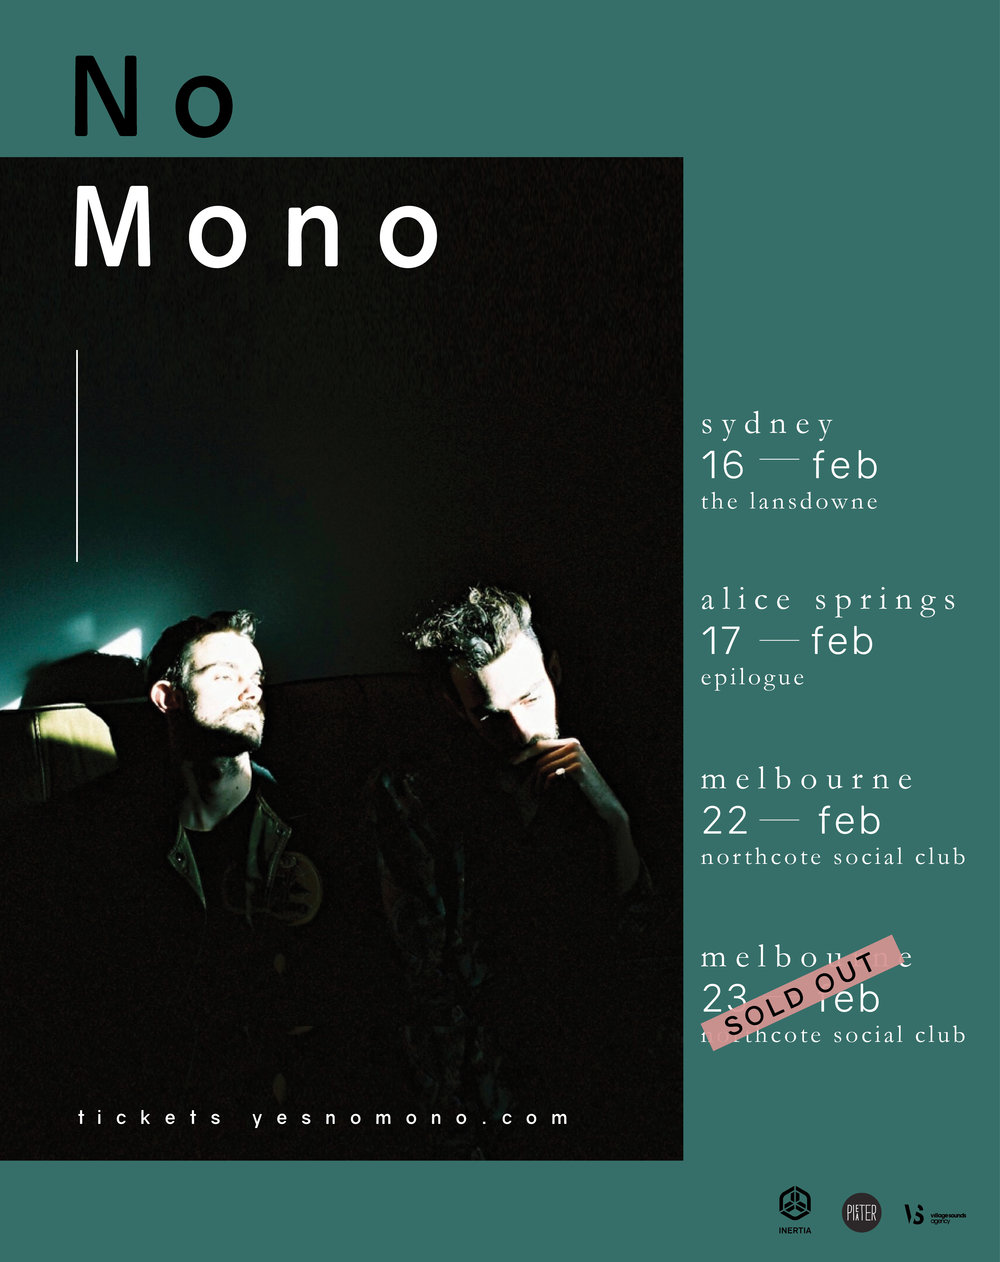 No Mono_Online_V2_Melbs show added.jpg